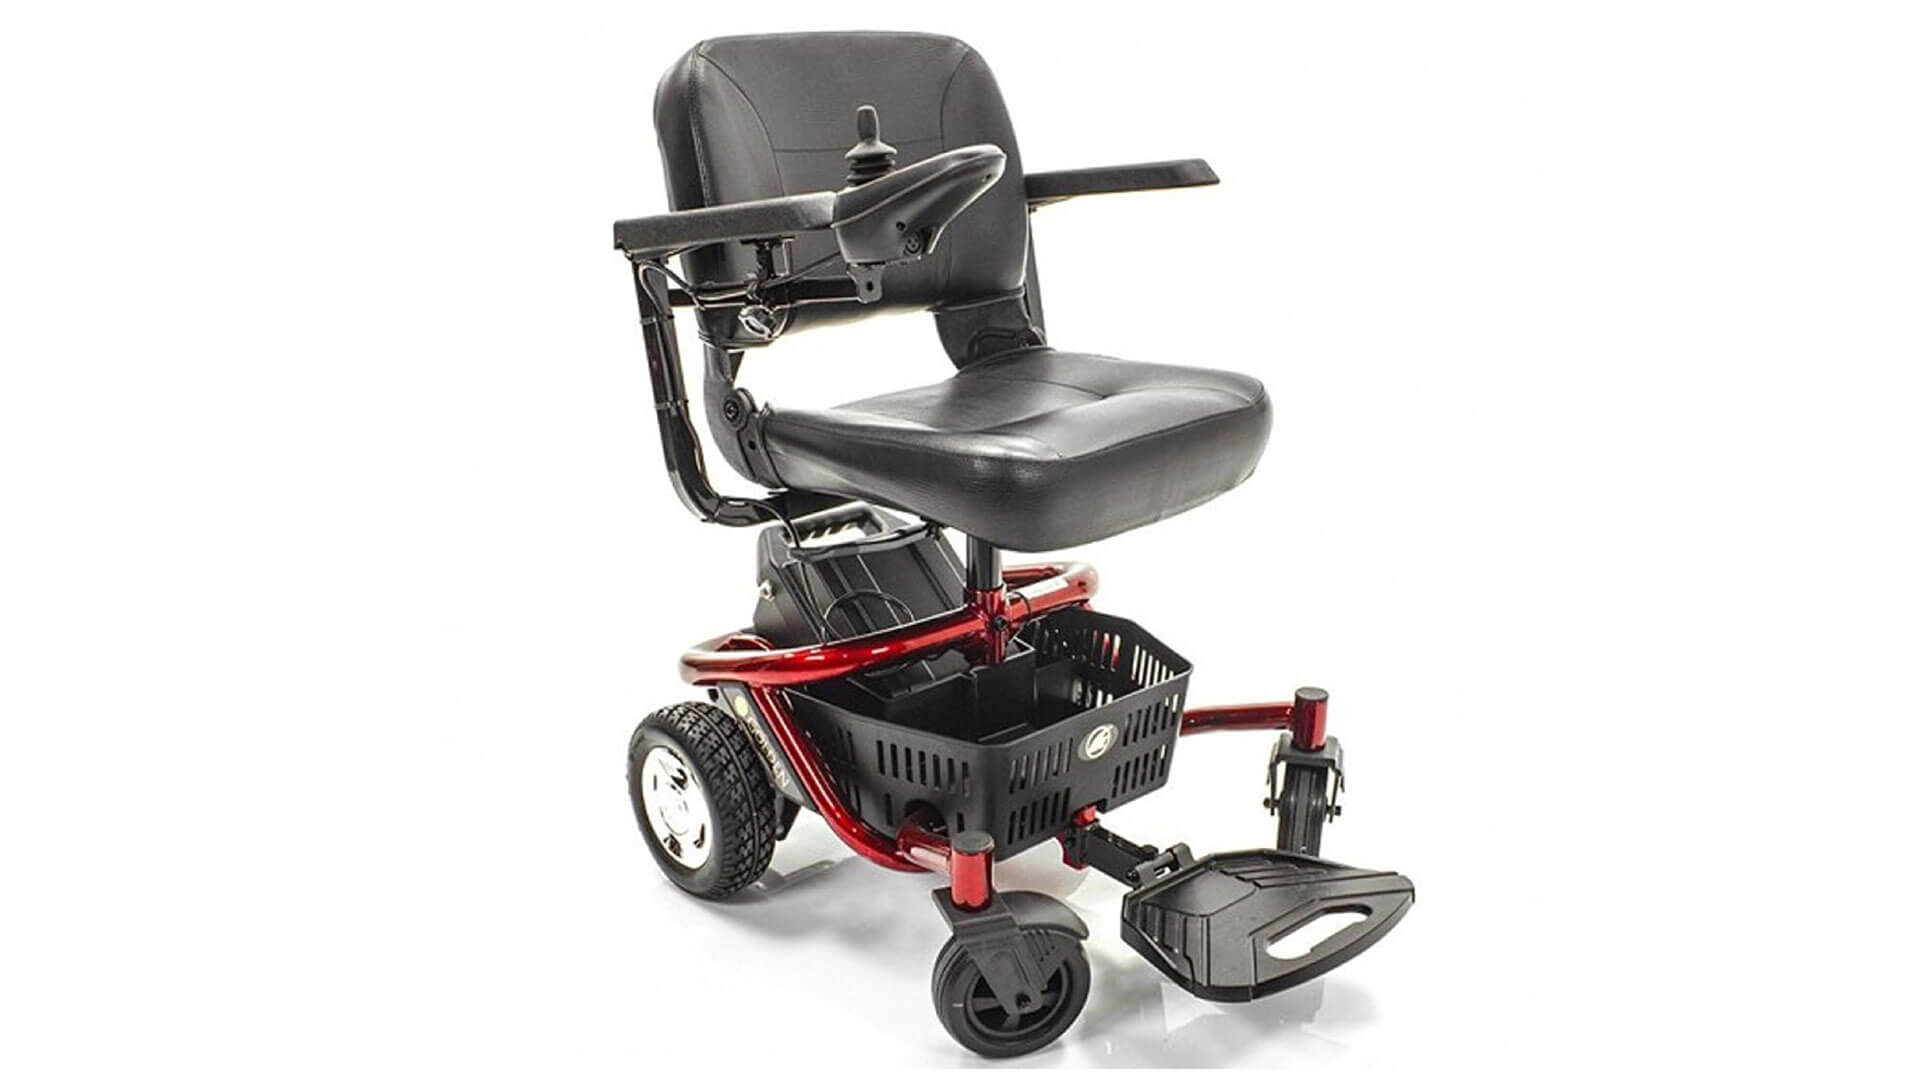 Best wheelchairs brands LiteRider Envy